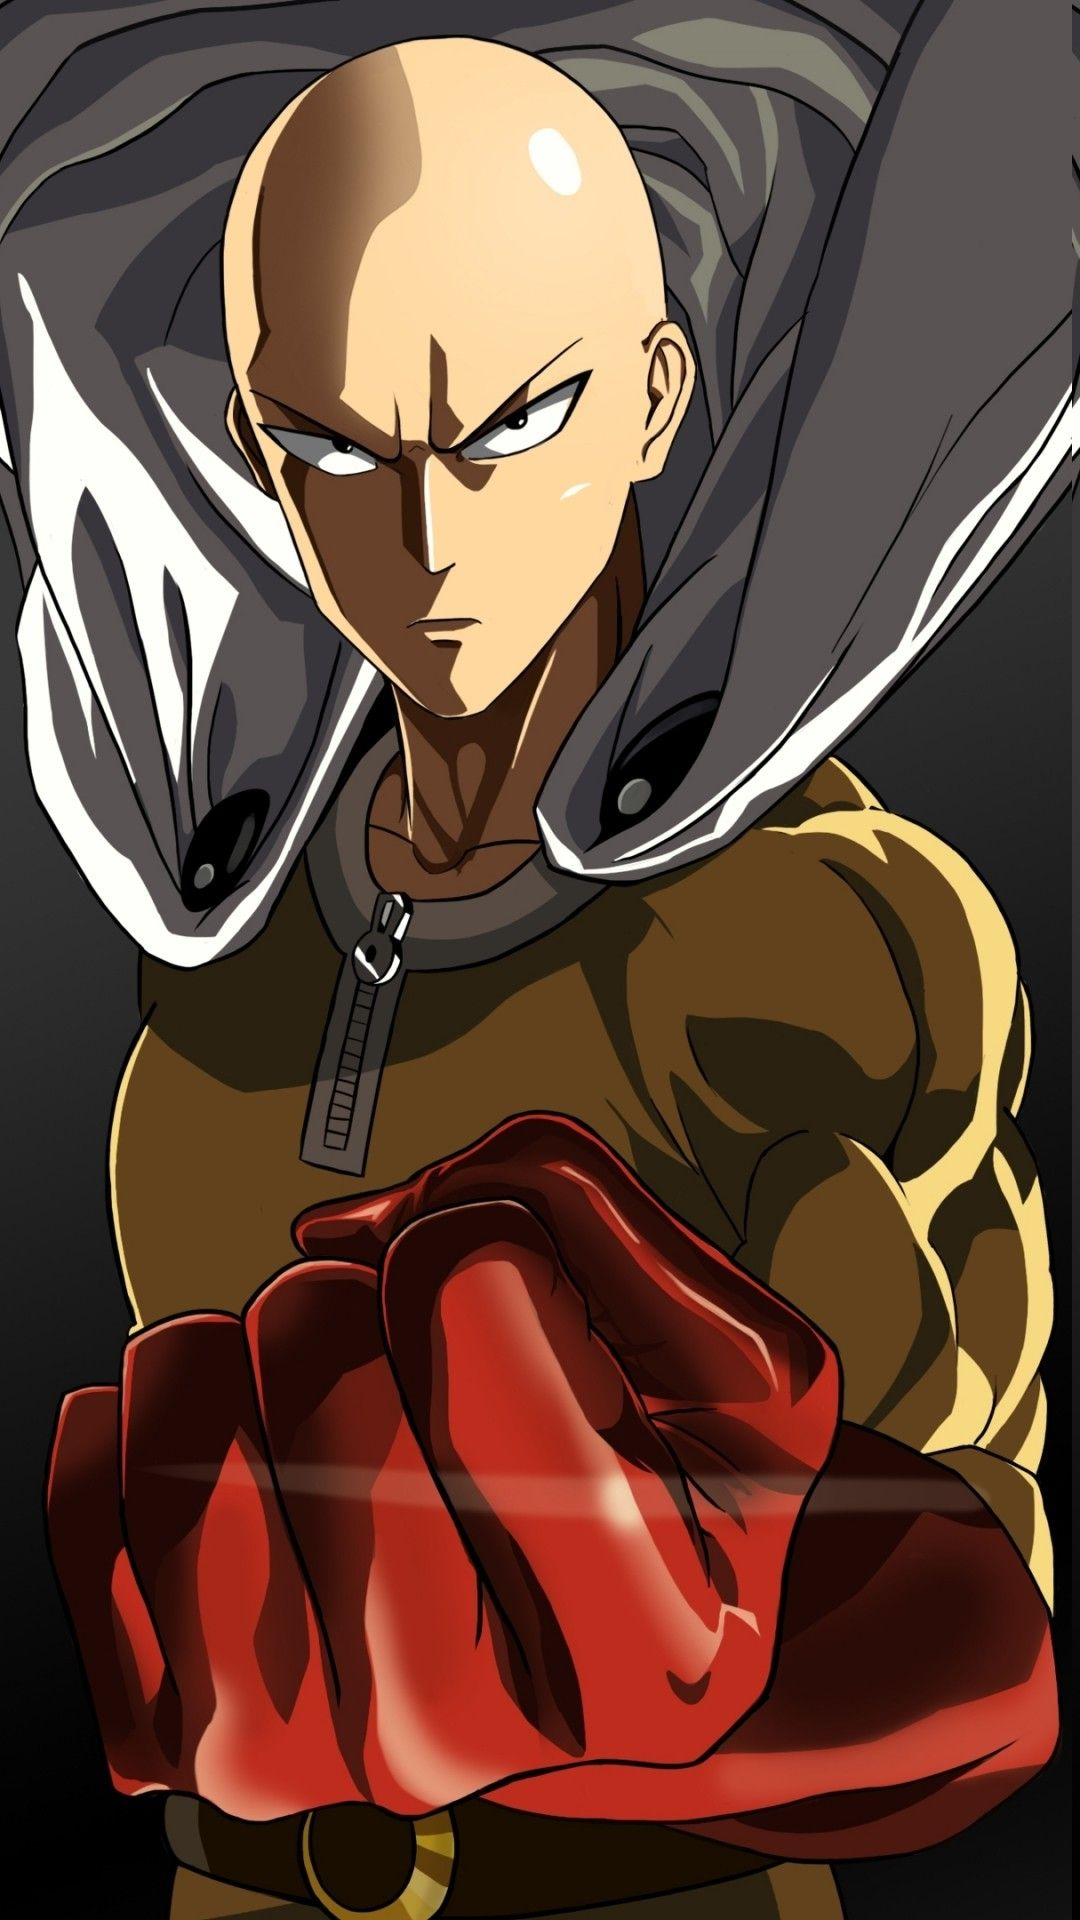 One Punch Man Hd Wallpaper 72 Images One Punch Man Anime One Punch Man Saitama One Punch Man